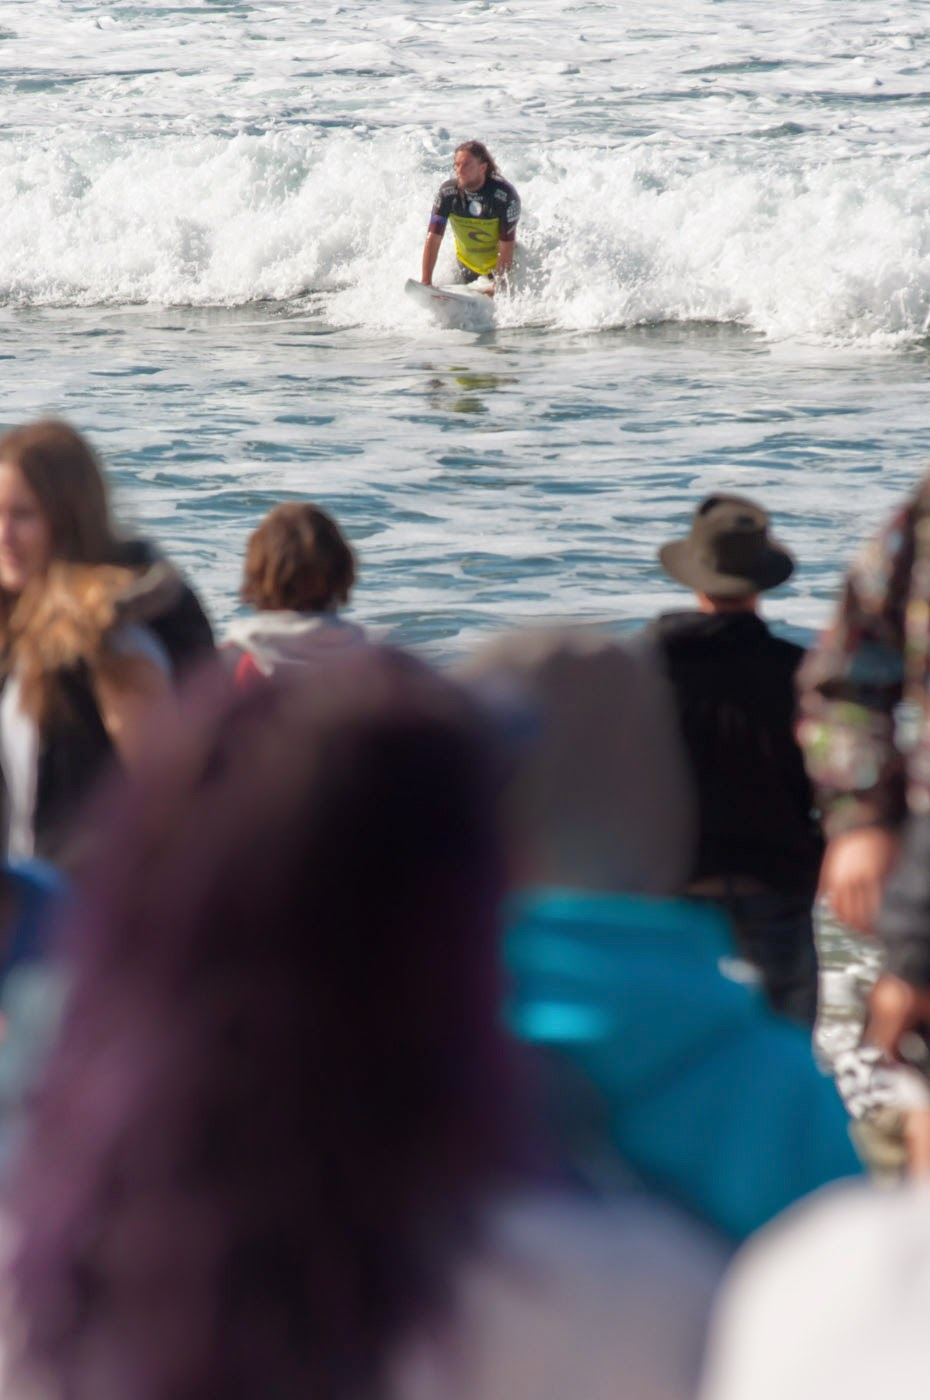 rip curl pro, rip curl, torquay, bells beach, bells, make it ring, 2014, tim macauley, surf, waves, australia, crowds, abstract, blocking, shredding, dissolve series, dissolve